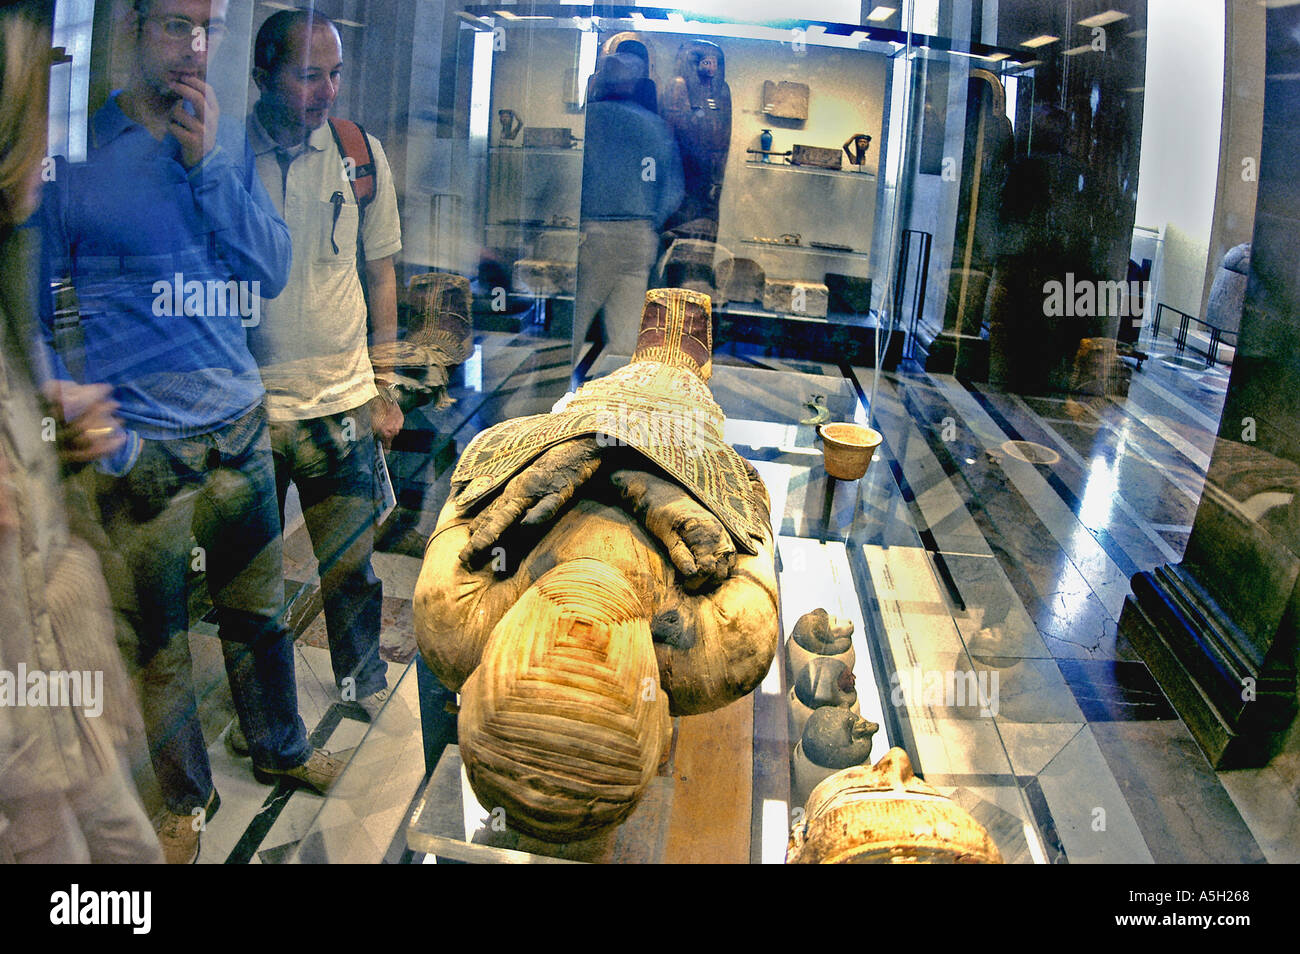 PARIS France Tourists Visiting in 'Louvre Museum' Egyptian Dept Collection 'Ancient Mummy' Travel Culture - Stock Image